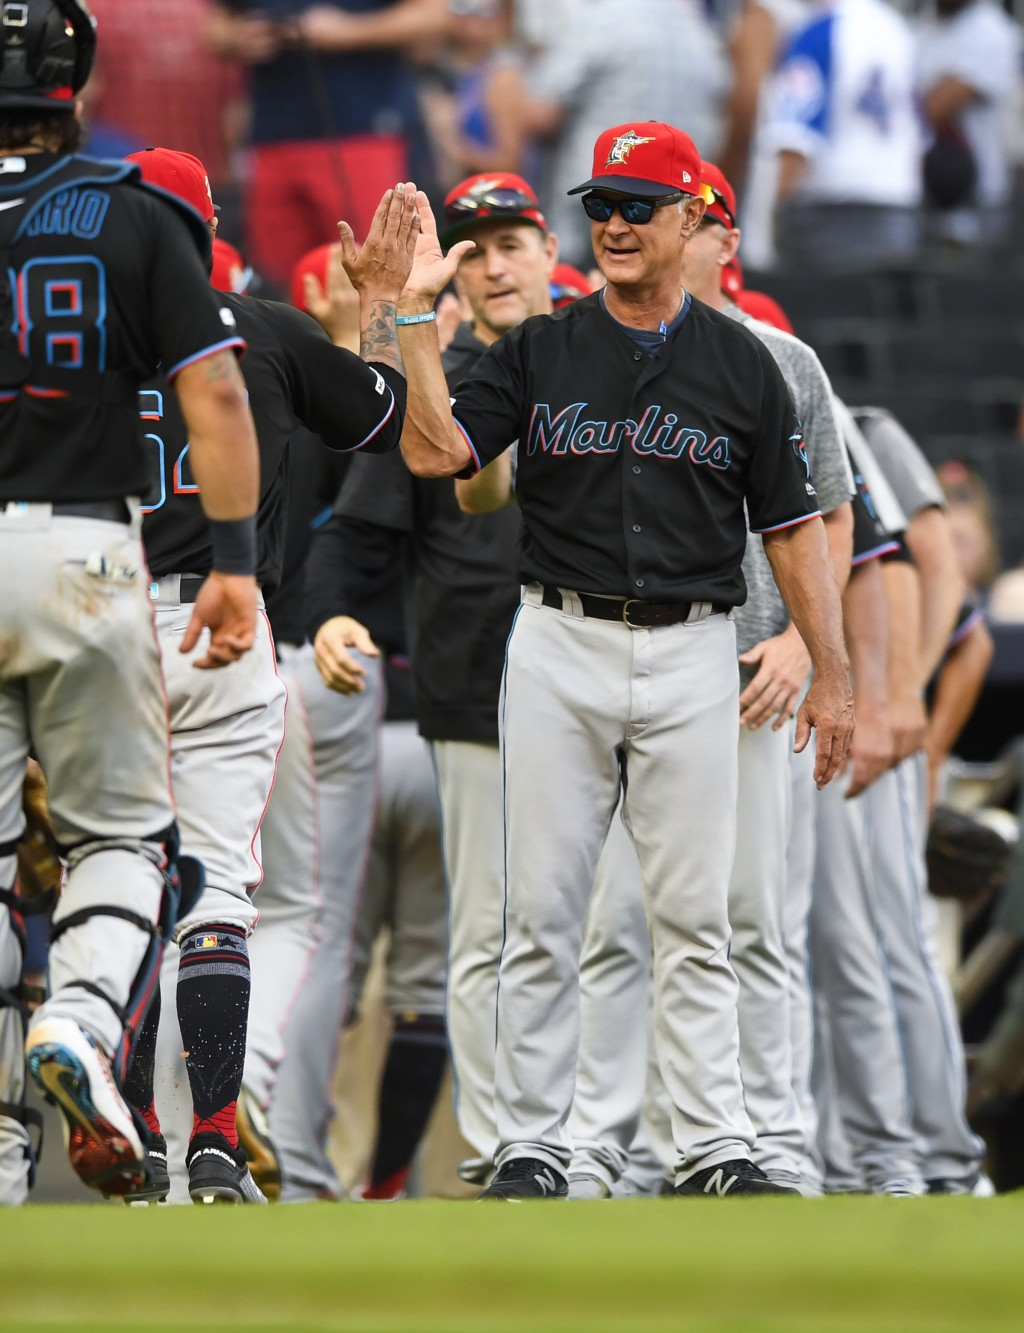 Miami Marlins manager Don Mattingly congratulates players as they come off the field after a baseball game against the Atlanta Braves, Saturday, July